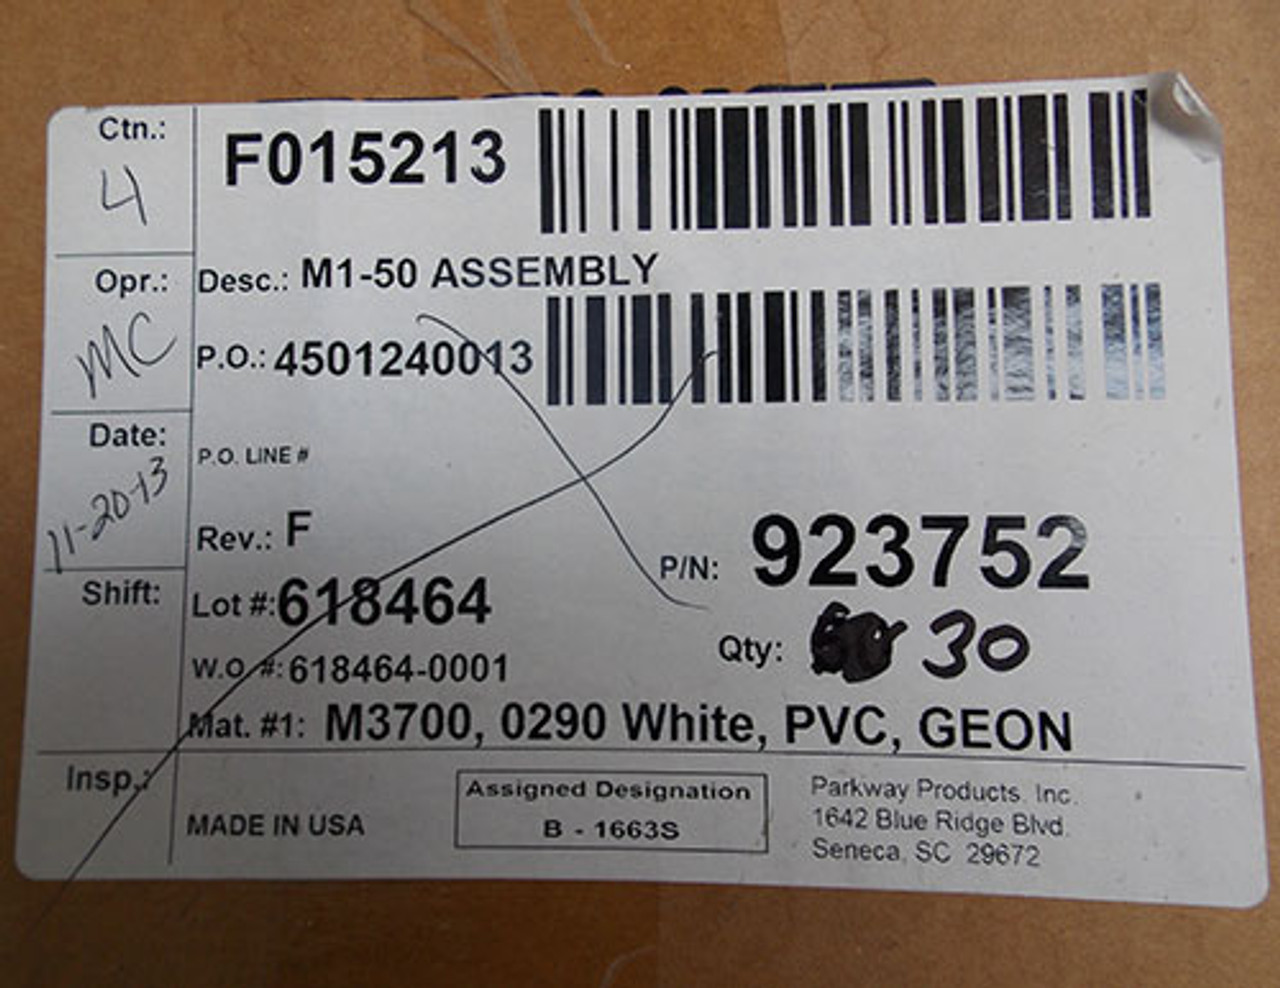 Marconi F015213 R66 M1-50 Cat5 Assembly M3700 0290 White PVC GEON - New